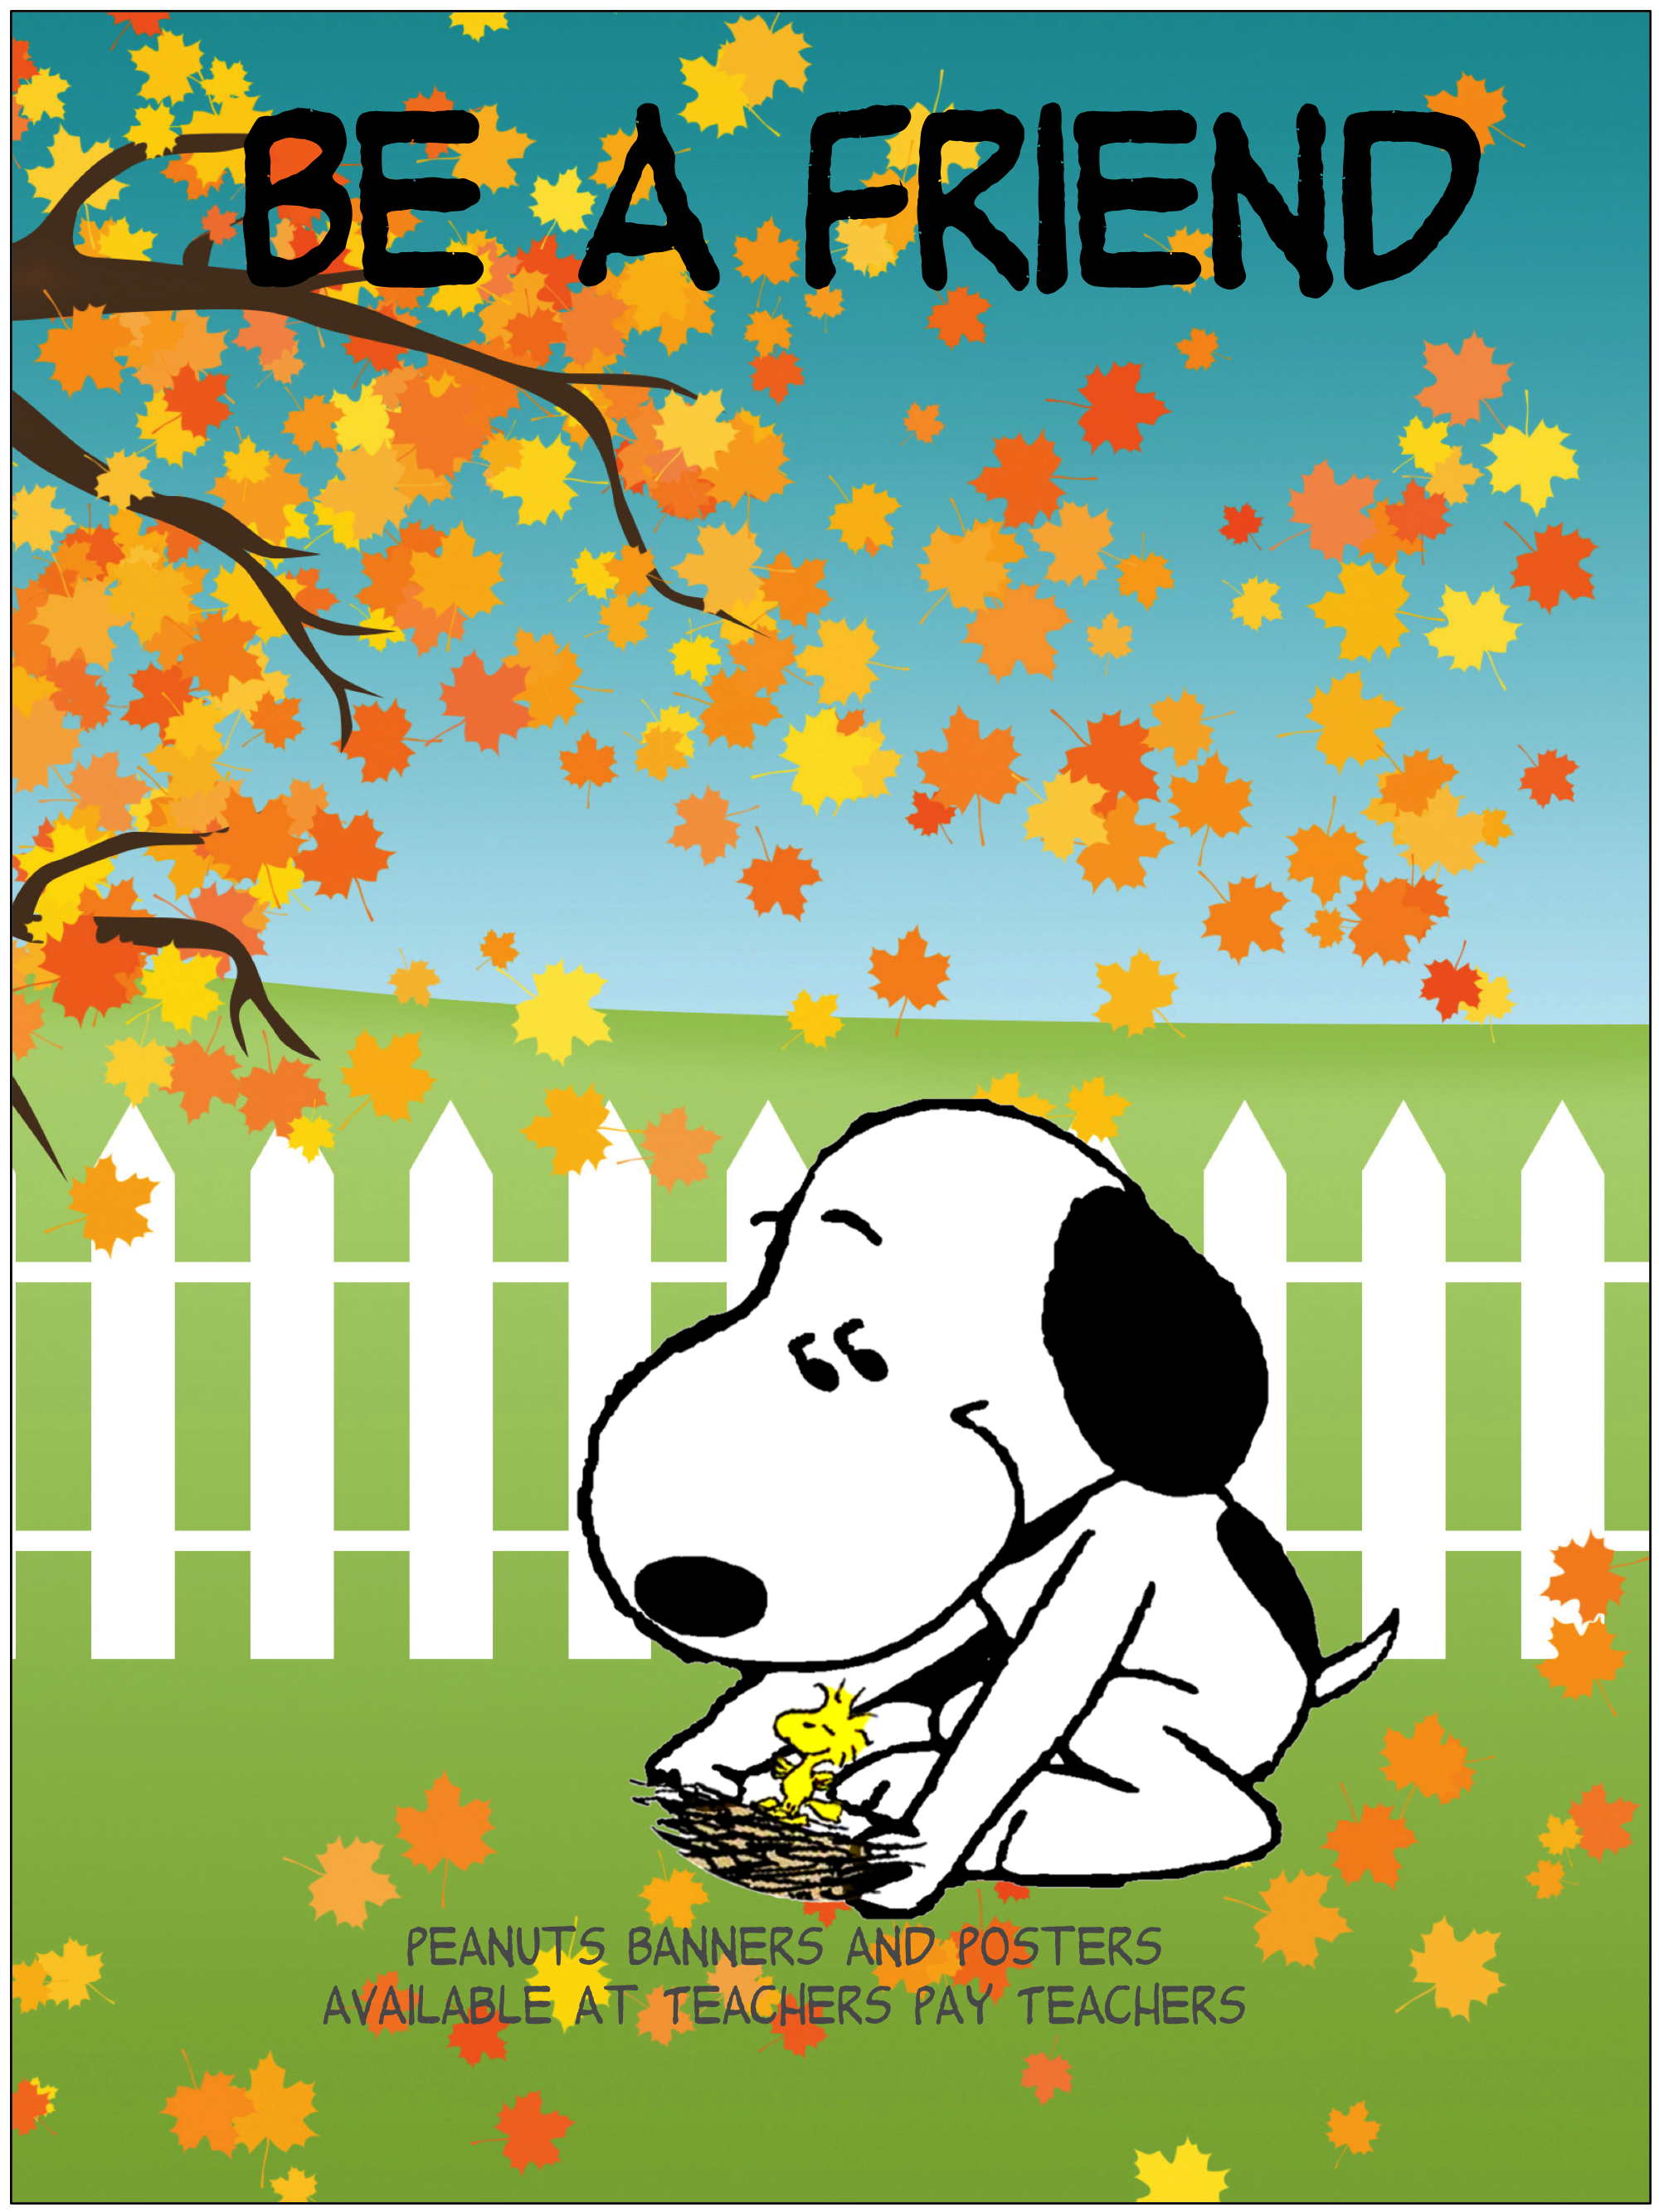 'Be Kind' Snoopy Poster for the classroom Novel studies